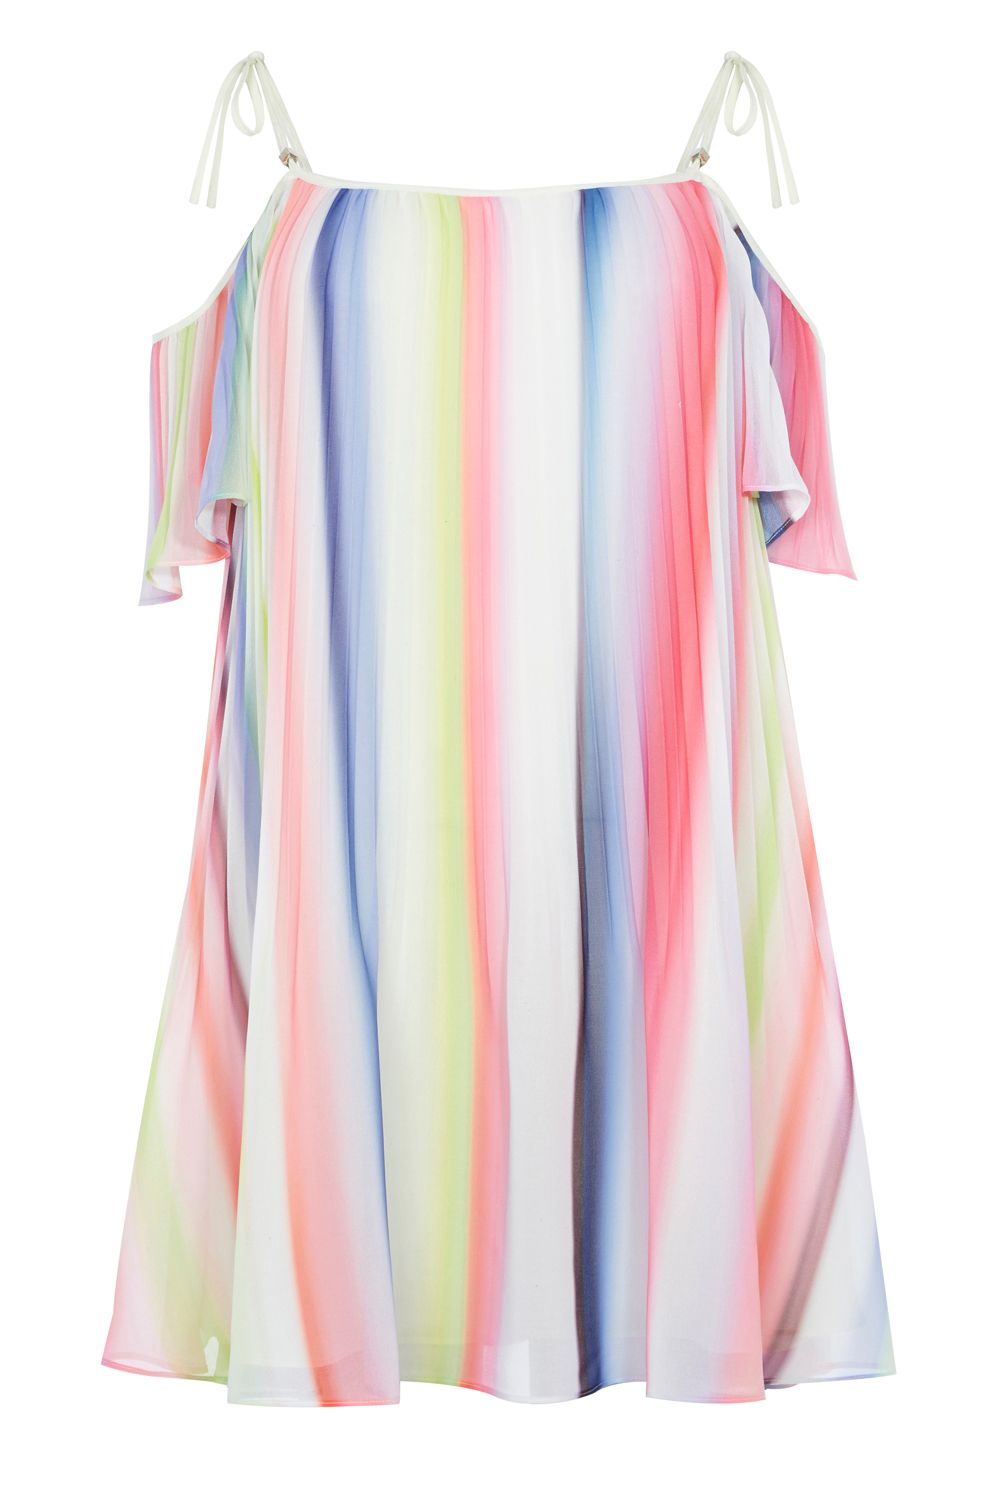 Coast Ivy Printed Stripe Dress, Multi-Coloured